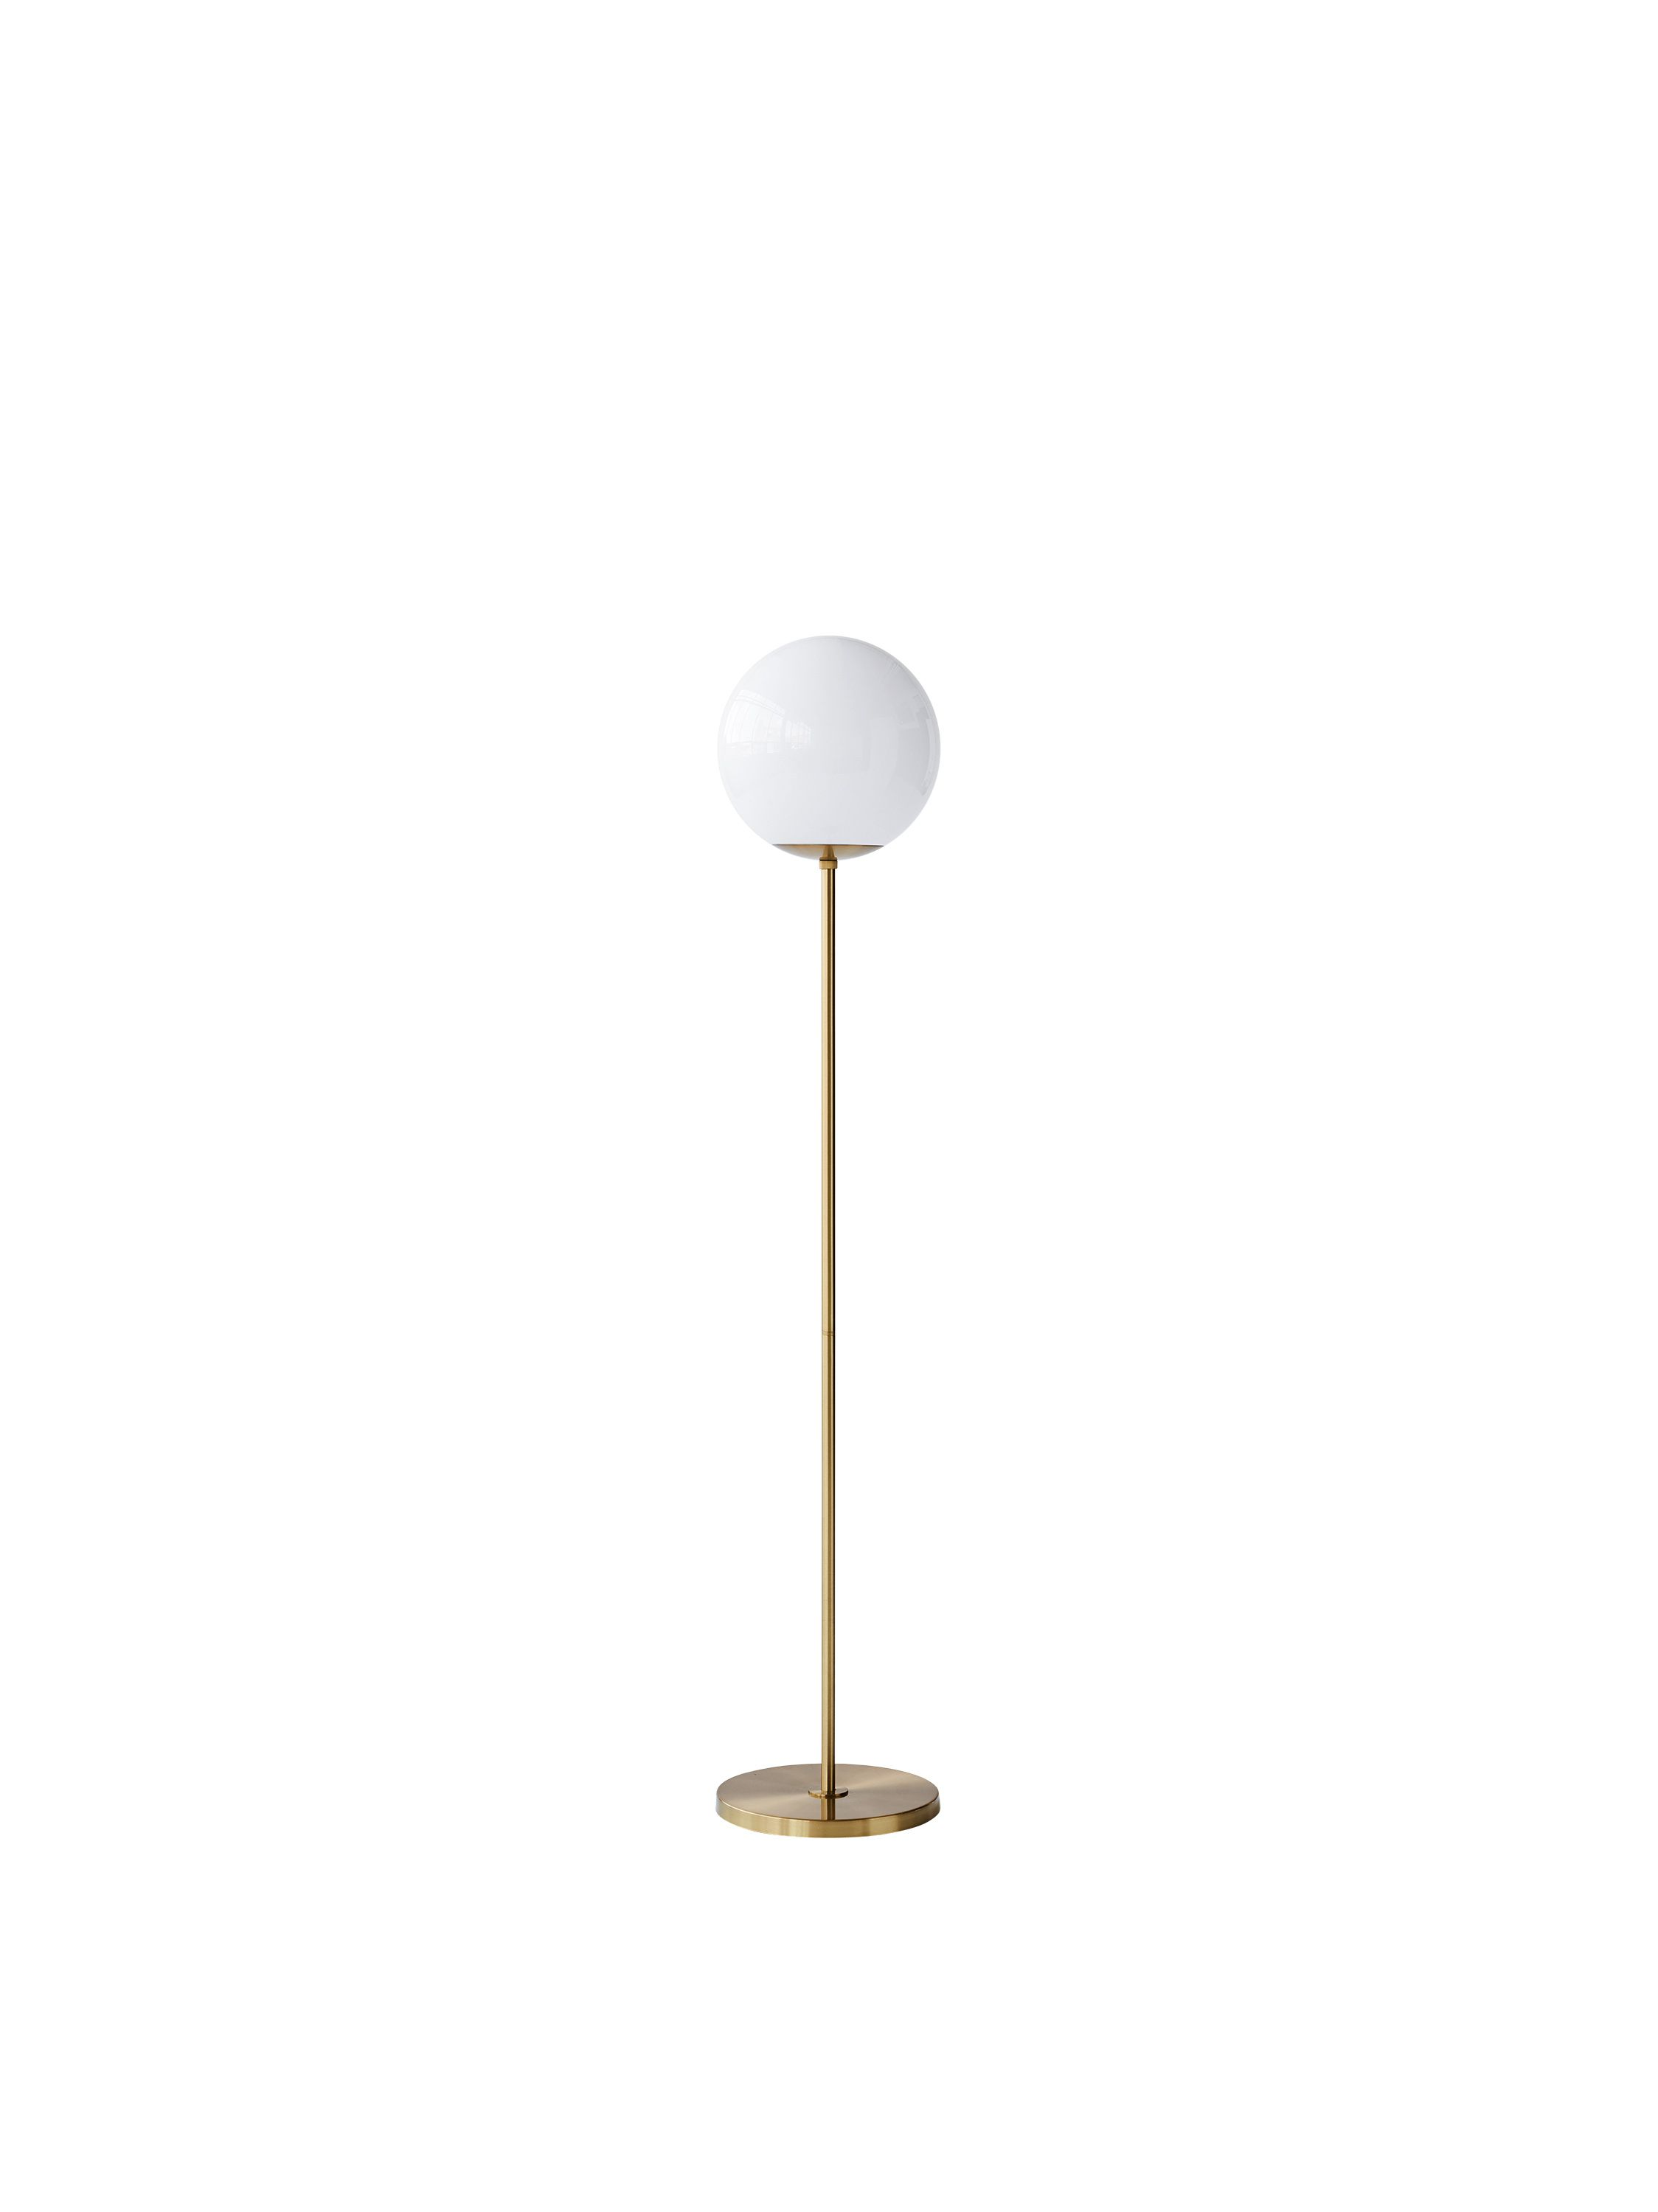 Stylish Lamps The 10 Most Stylish Floor Lamps To Illuminate A Modern Space